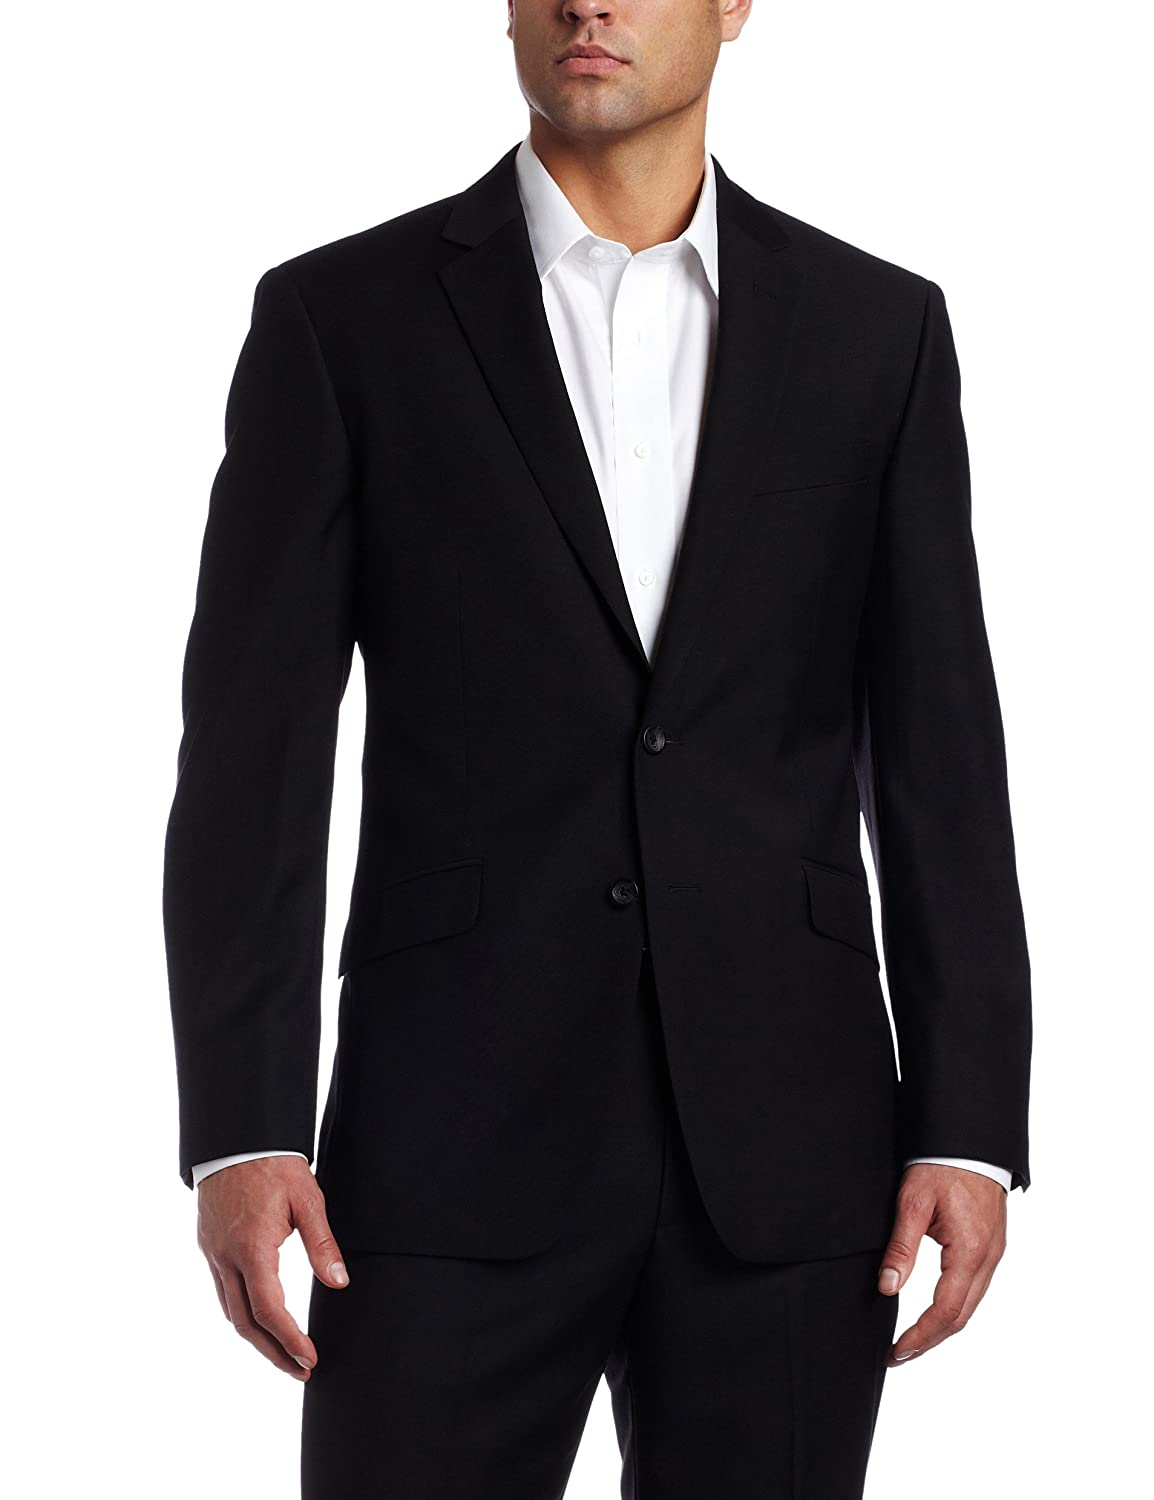 Kenneth Cole REACTION Men's Black-Solid Suit Separate Jacket at